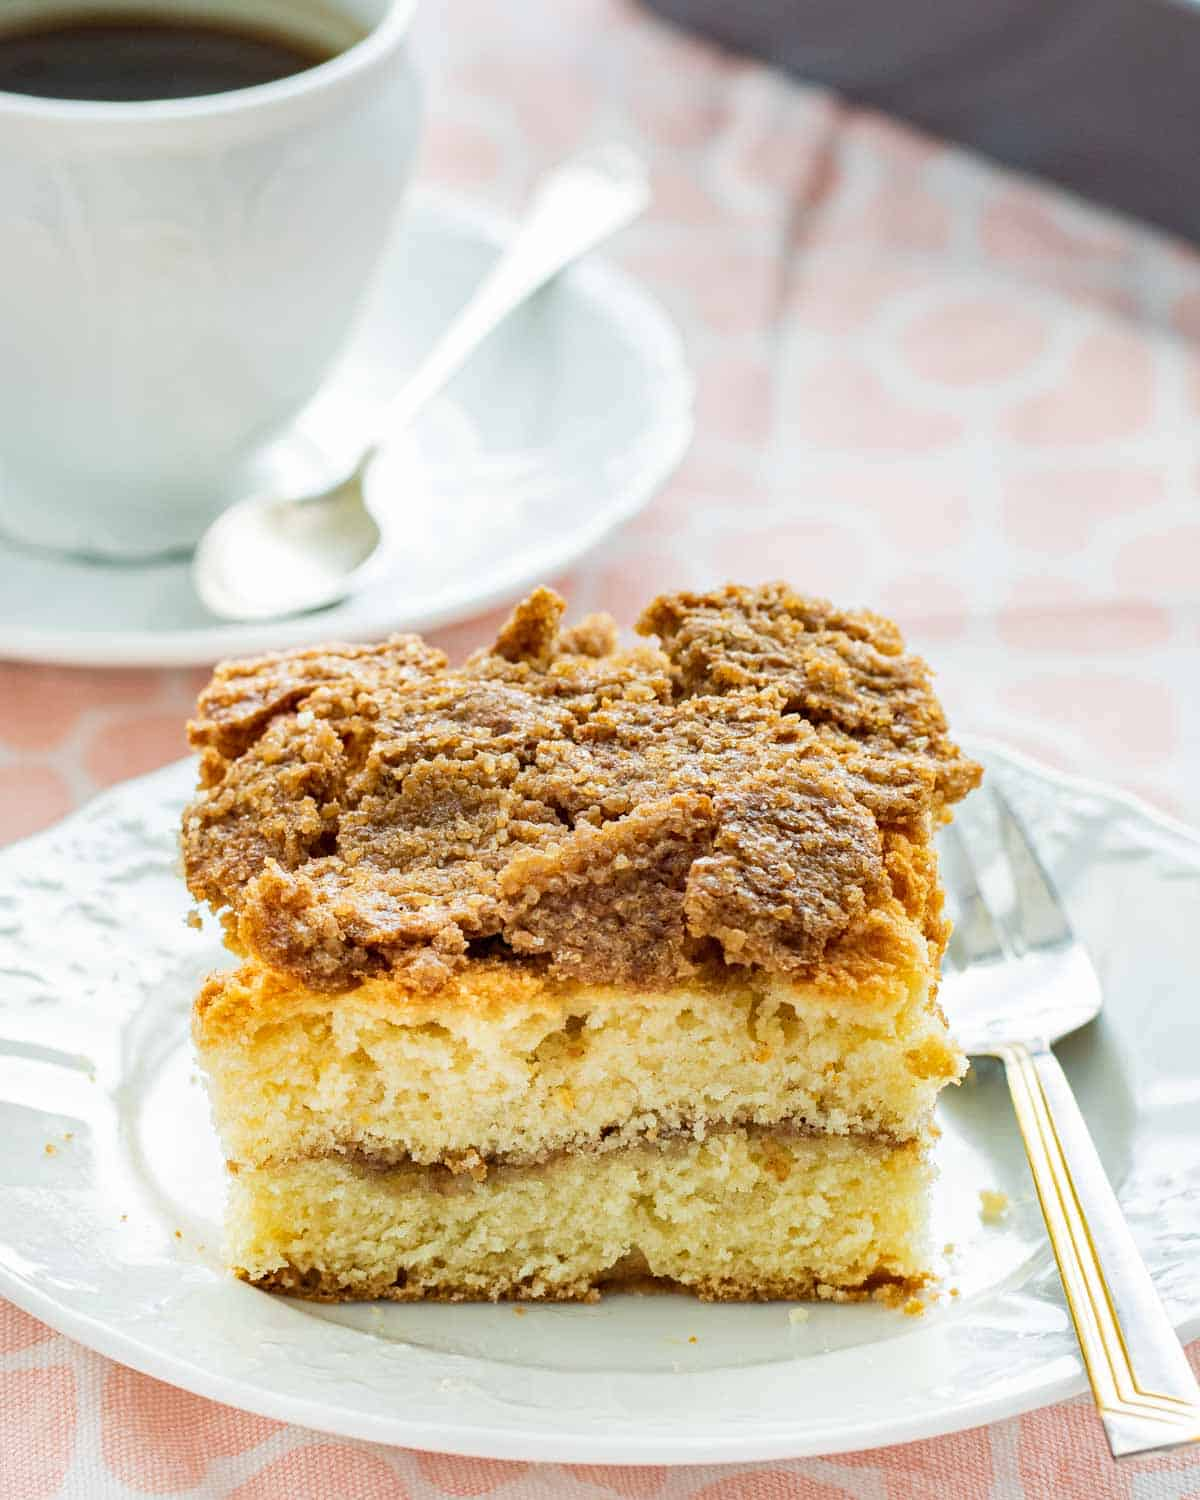 a full slice of freshly made coffee cake on a white plate with a cup of coffee in the background